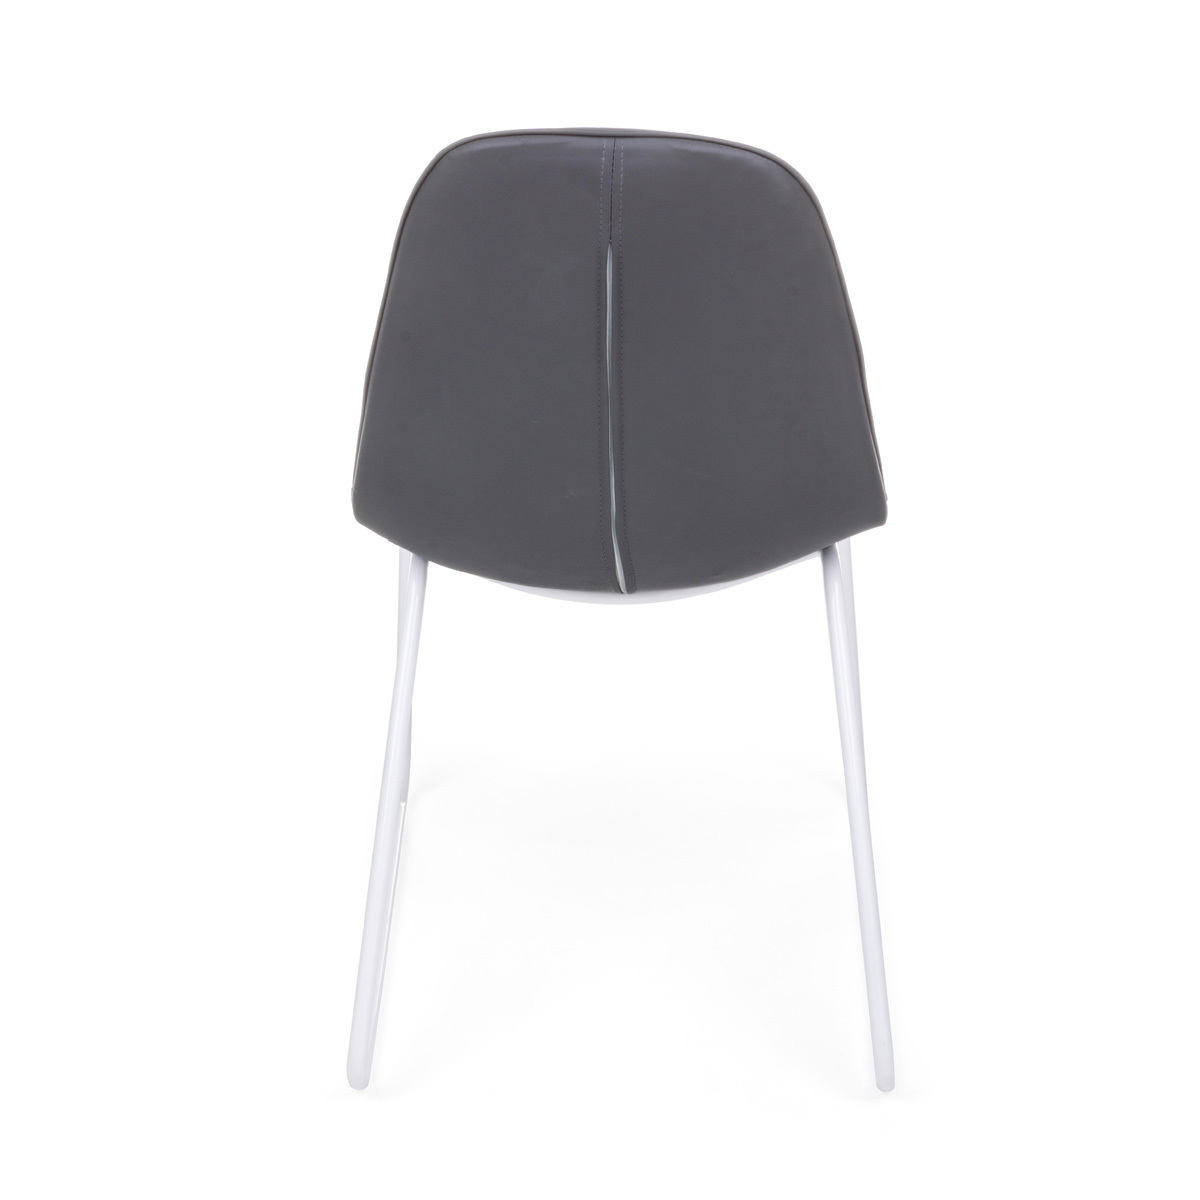 Photos 3: Bizzotto Chair in metal and eco-leather - anthracite 0731709